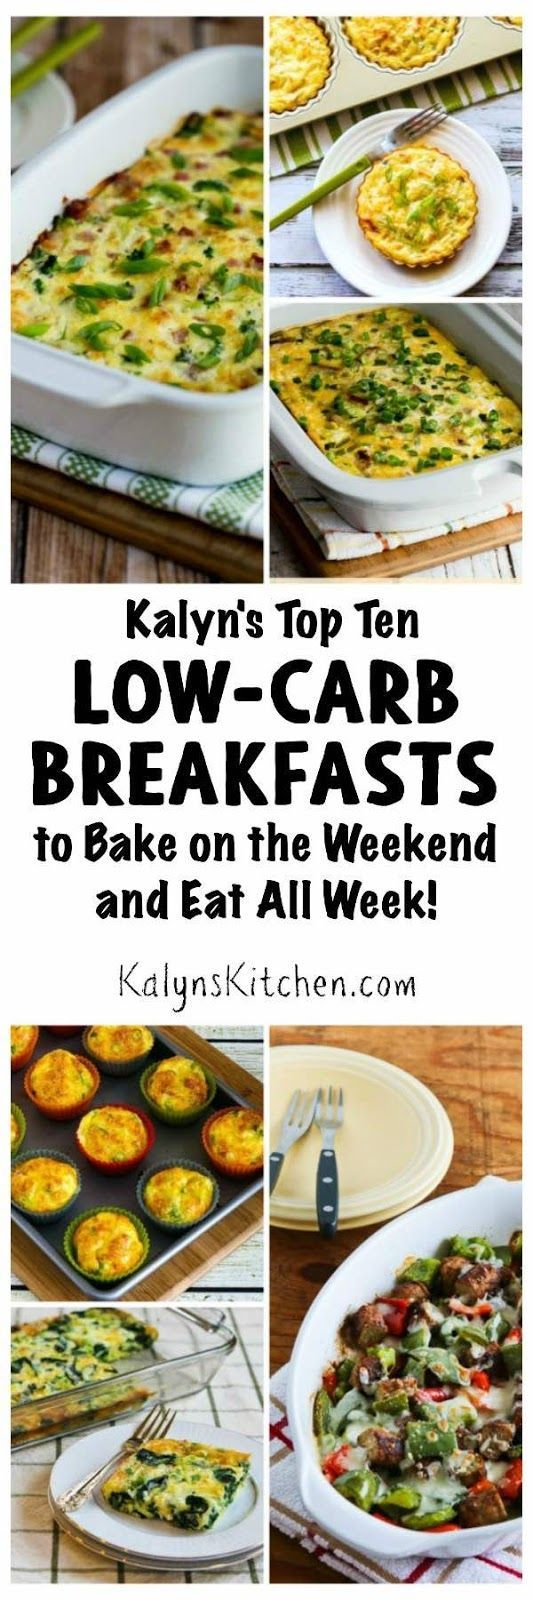 Kalyn's Top 10 Low Carb Breakfasts to Bake on the Weekend and Eat All Week found on KalynsKitchen.com